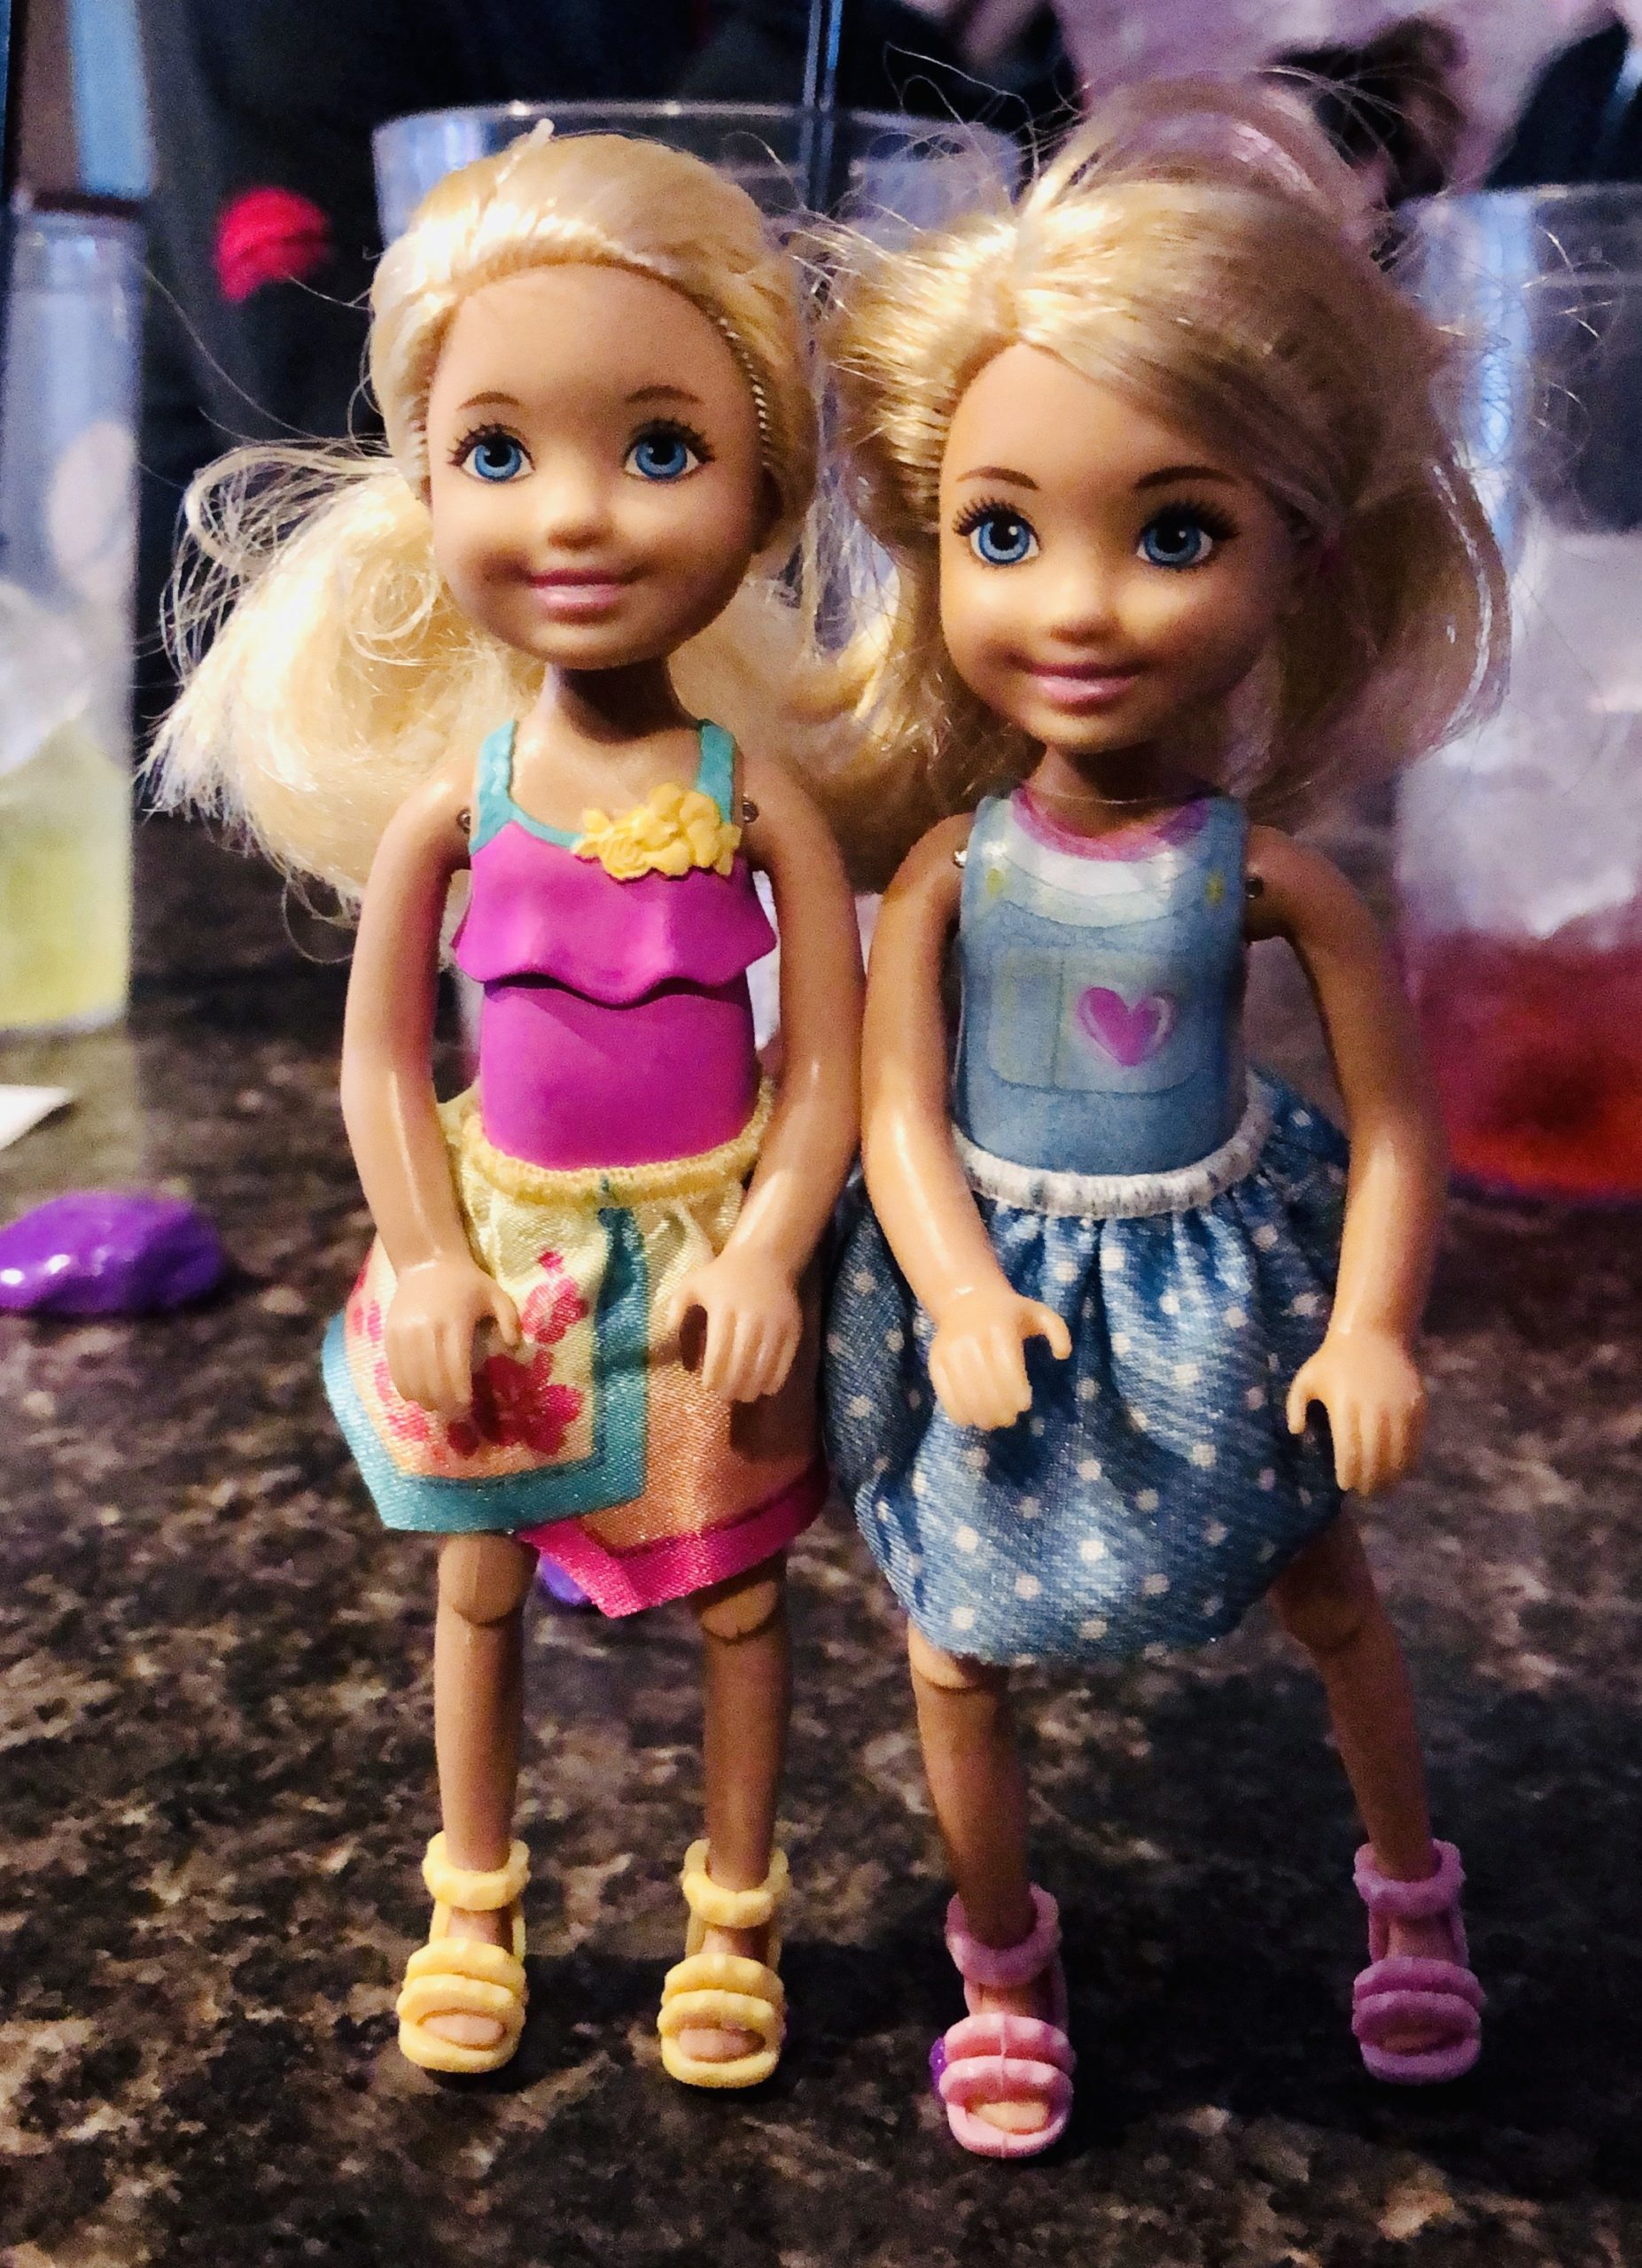 2 blonde haired Chelsea dolls named Brynn and Rowan for the short story Rowan's Diary.  One  is wearing a pink dress and the other has a blue dress on.